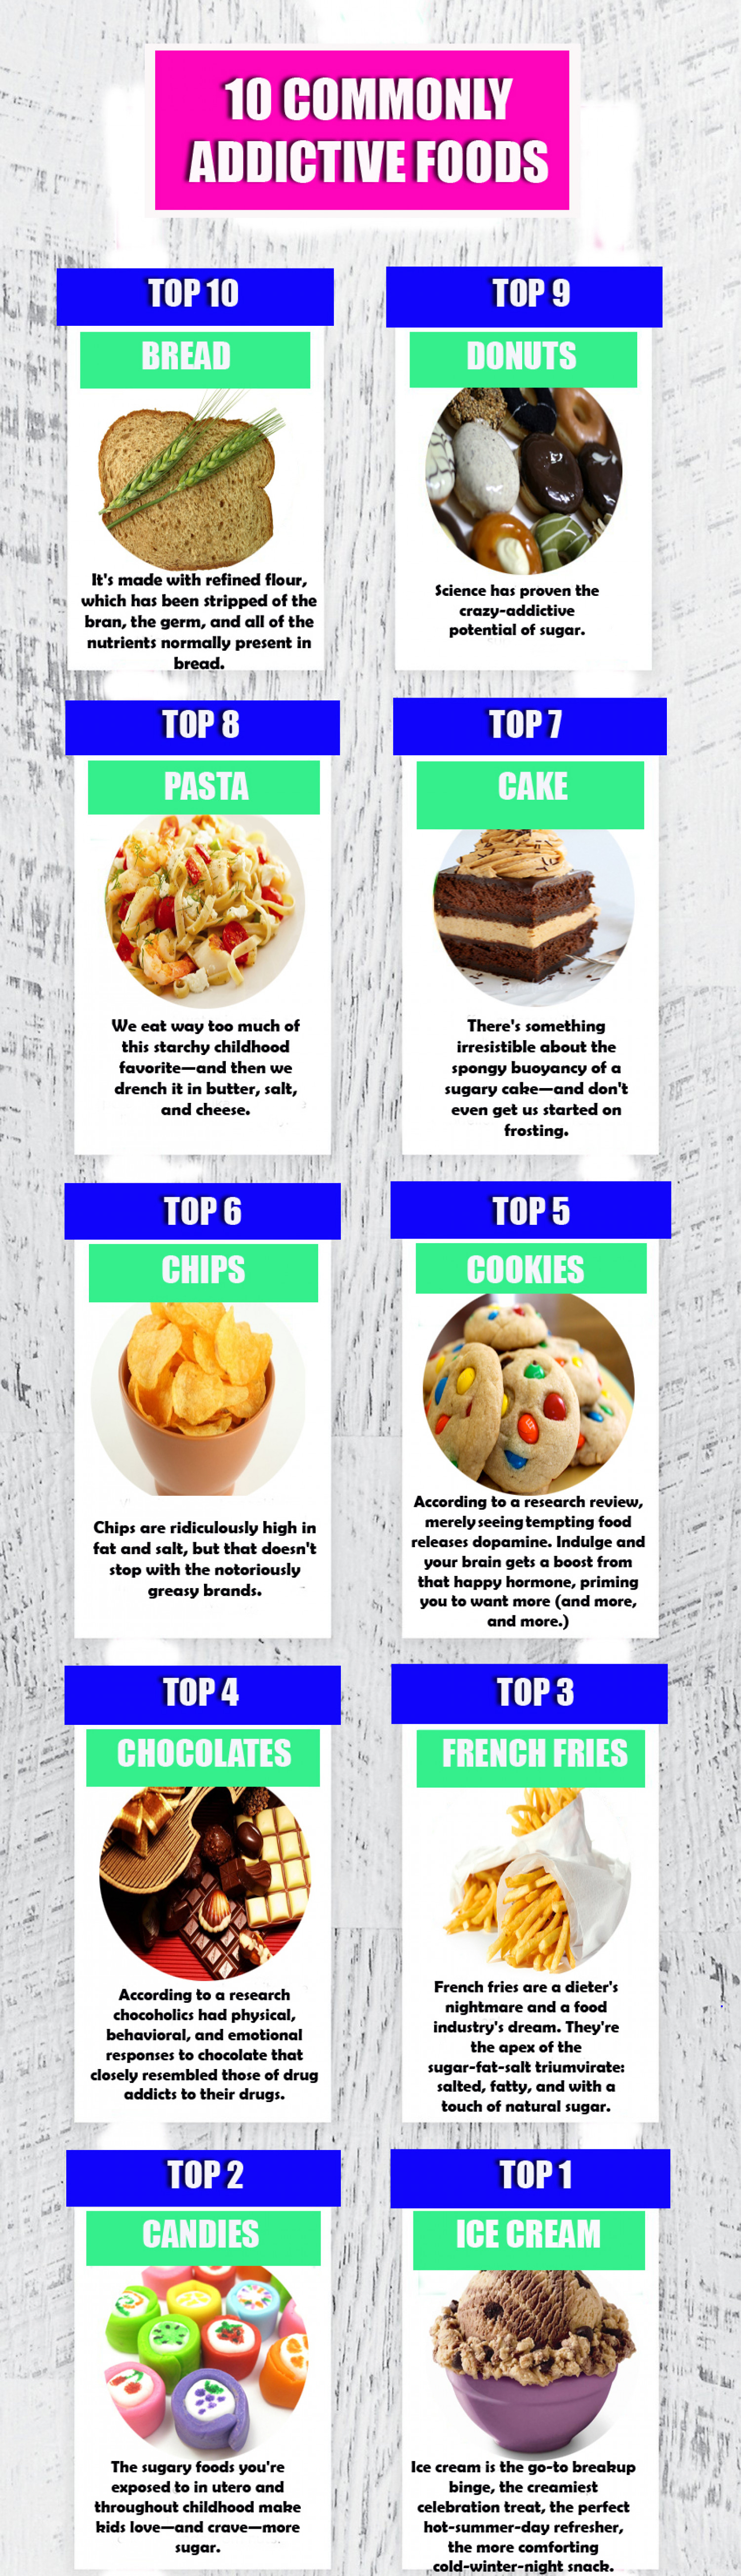 10 Commonly Addictive Foods Infographic